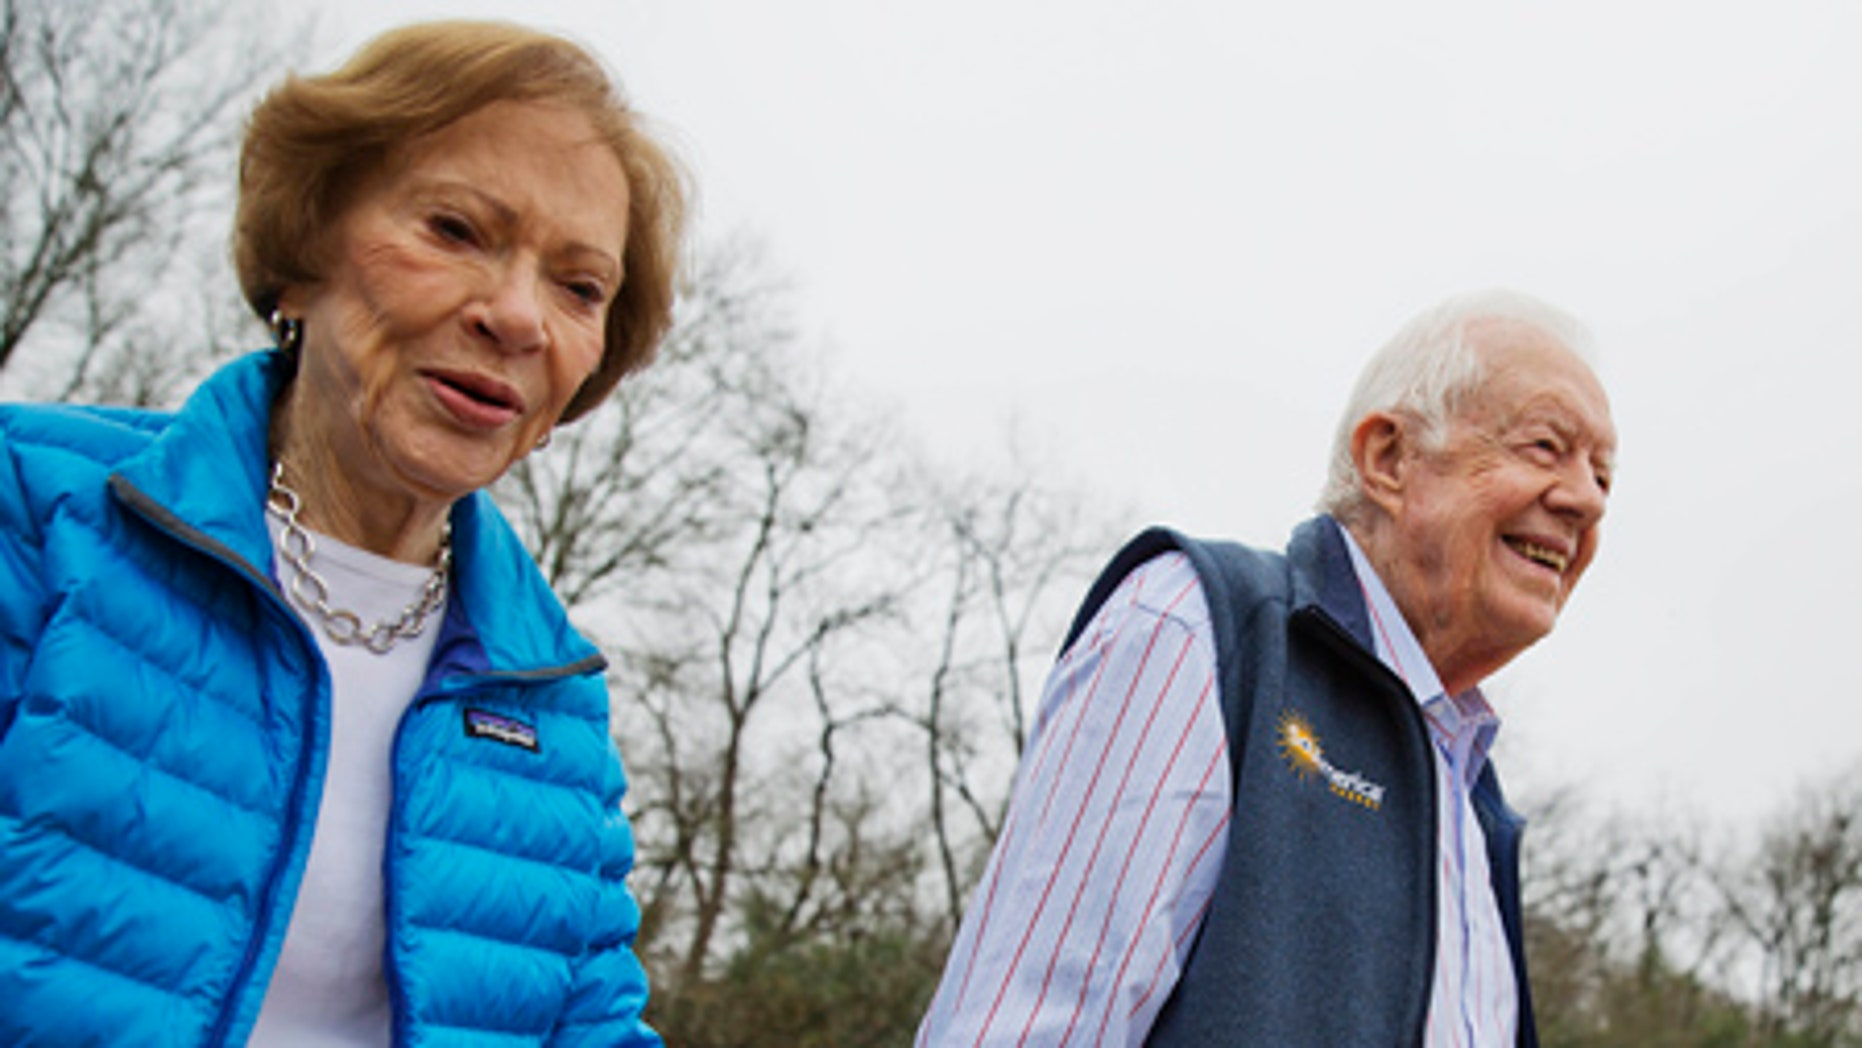 Former President Jimmy Carter and his wife Rosalynn arrive for a ribbon cutting ceremony for a solar panel project on their Georgia farm